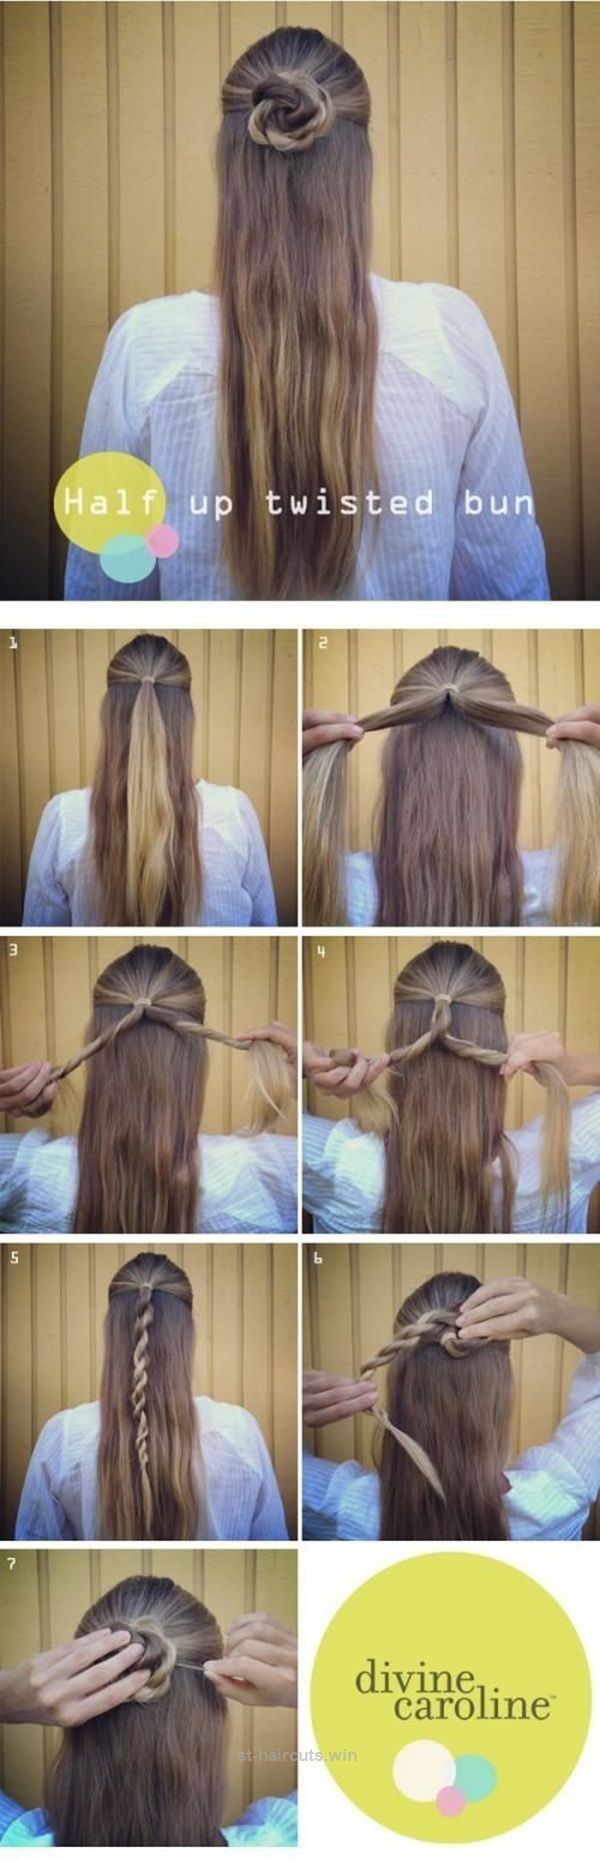 Insane 40 Easy Hairstyles for Schools to Try in 2017. Quick, Easy, Cute  and Simple Step By Step Girls and Teens Hairstyles for Back to School.  Great For Medium Hair, Short ..